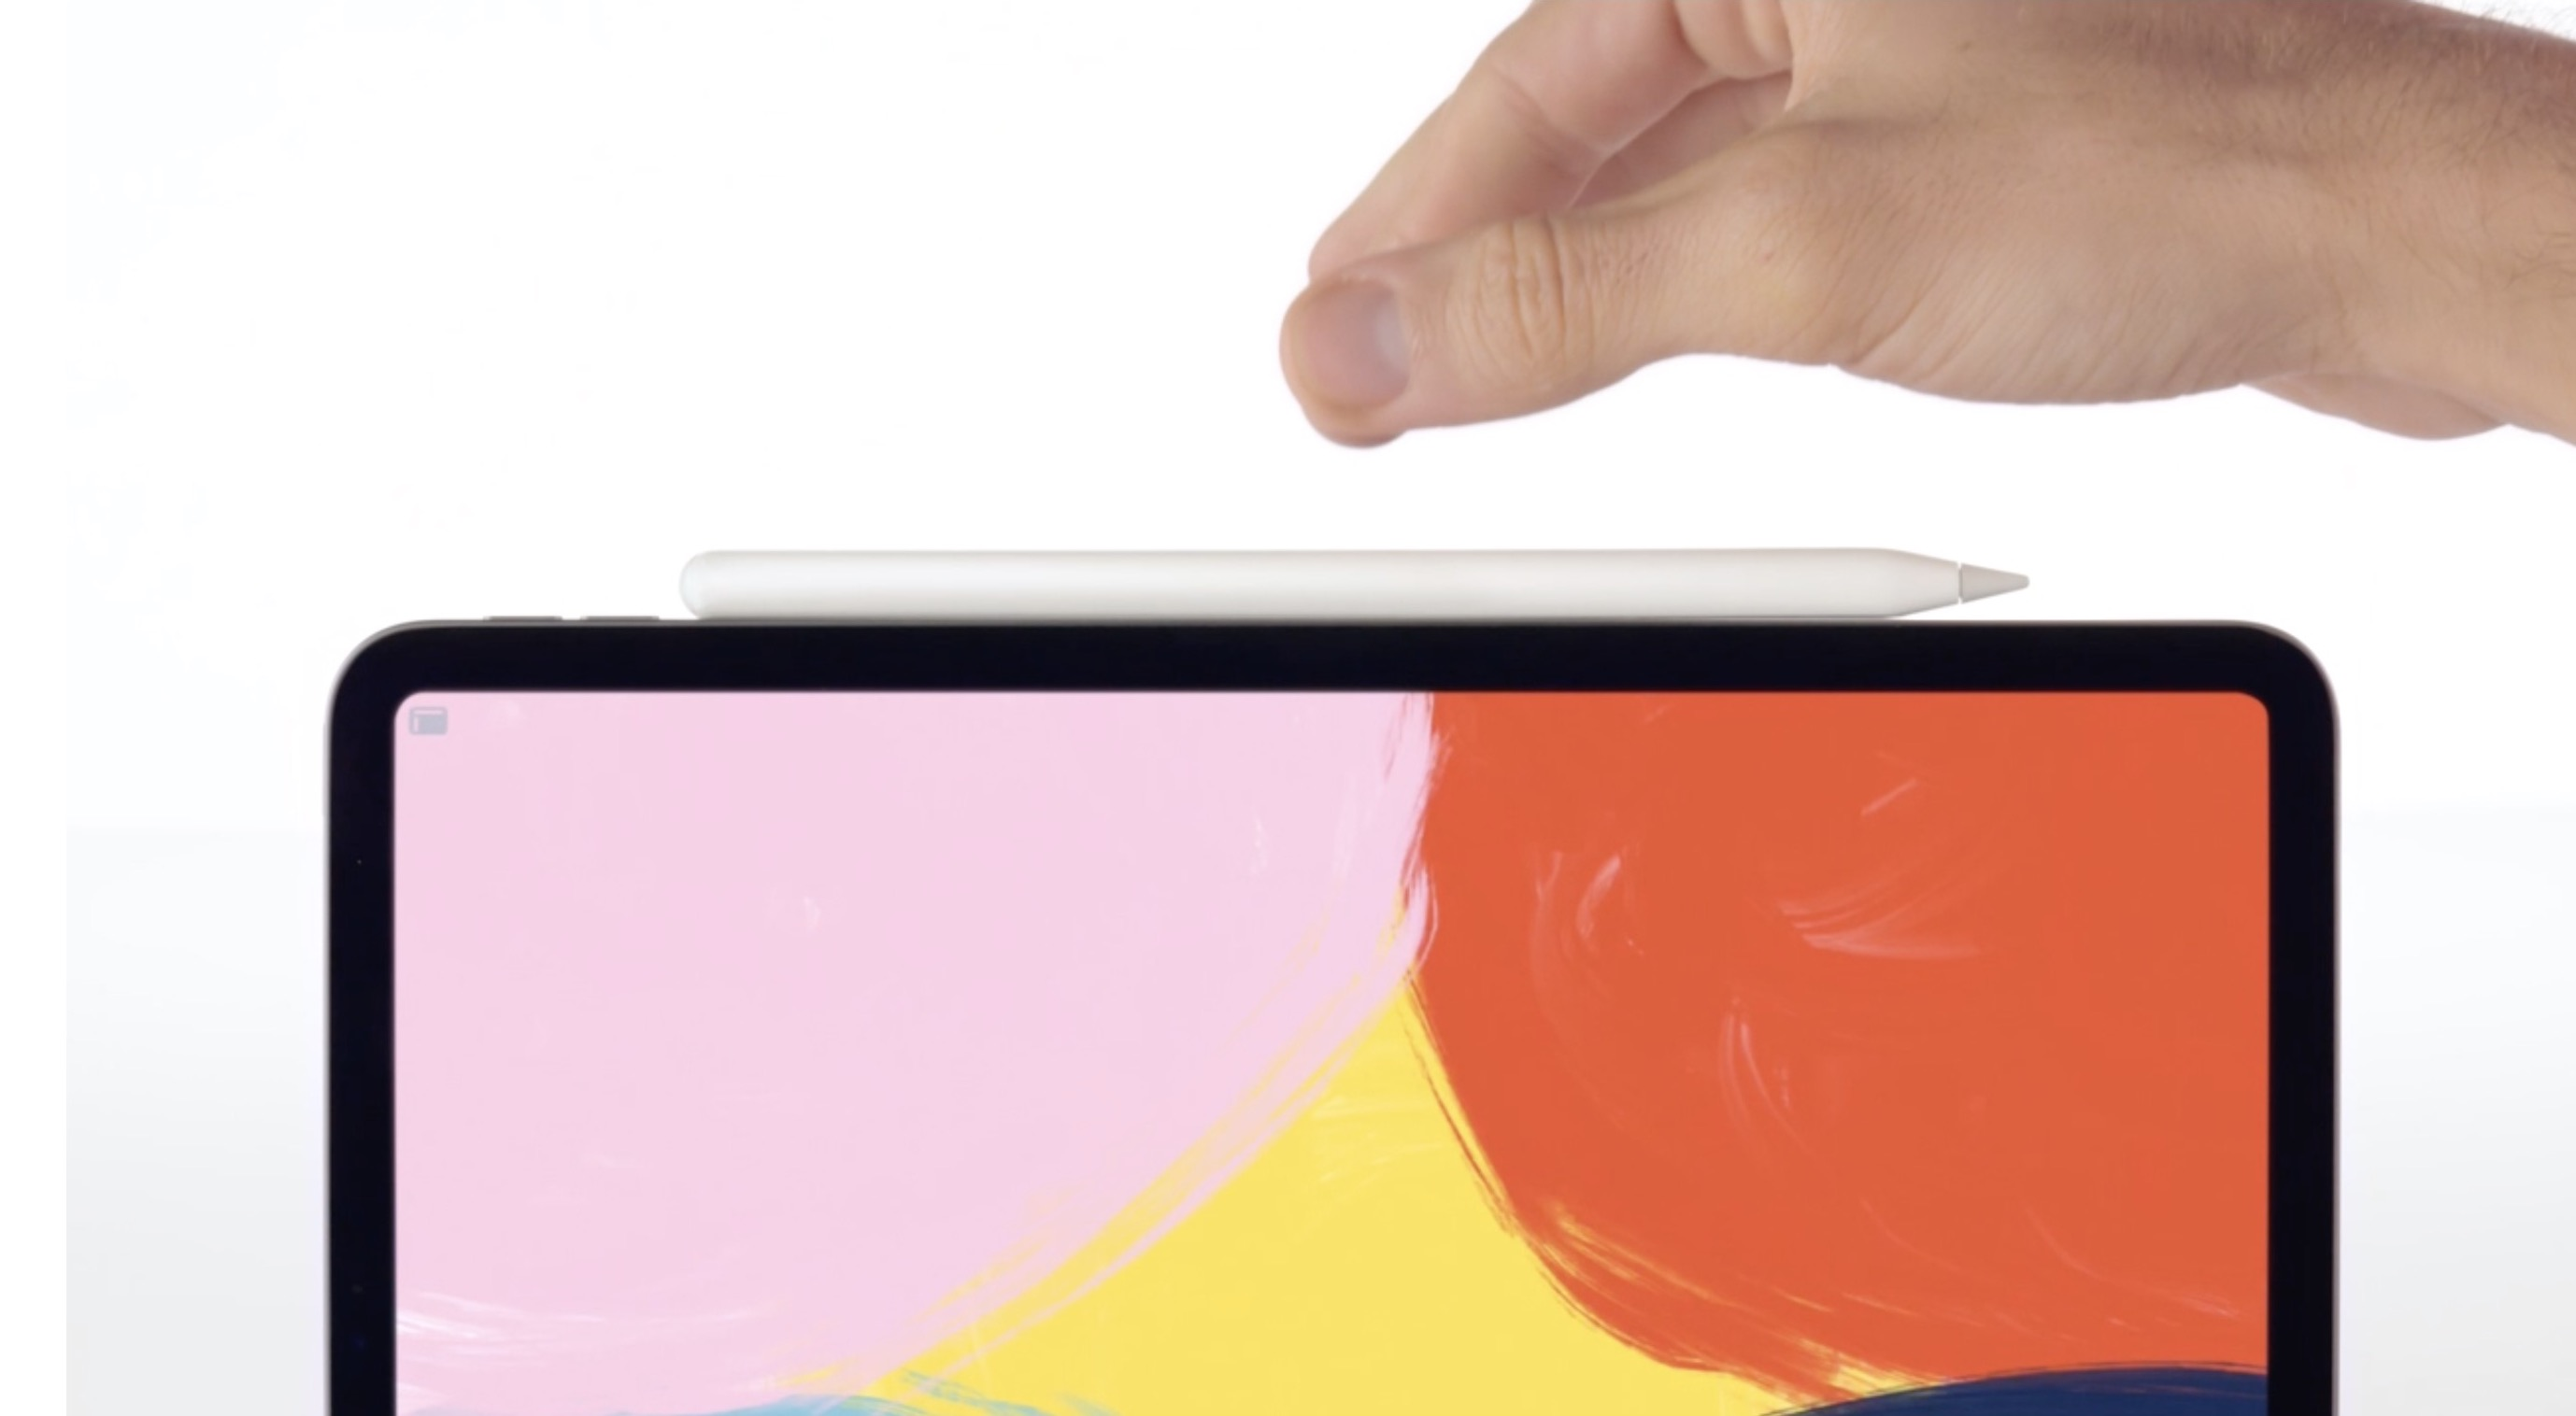 New Apple Pencil Magnetically Attaches To Ipad Pro Pairs